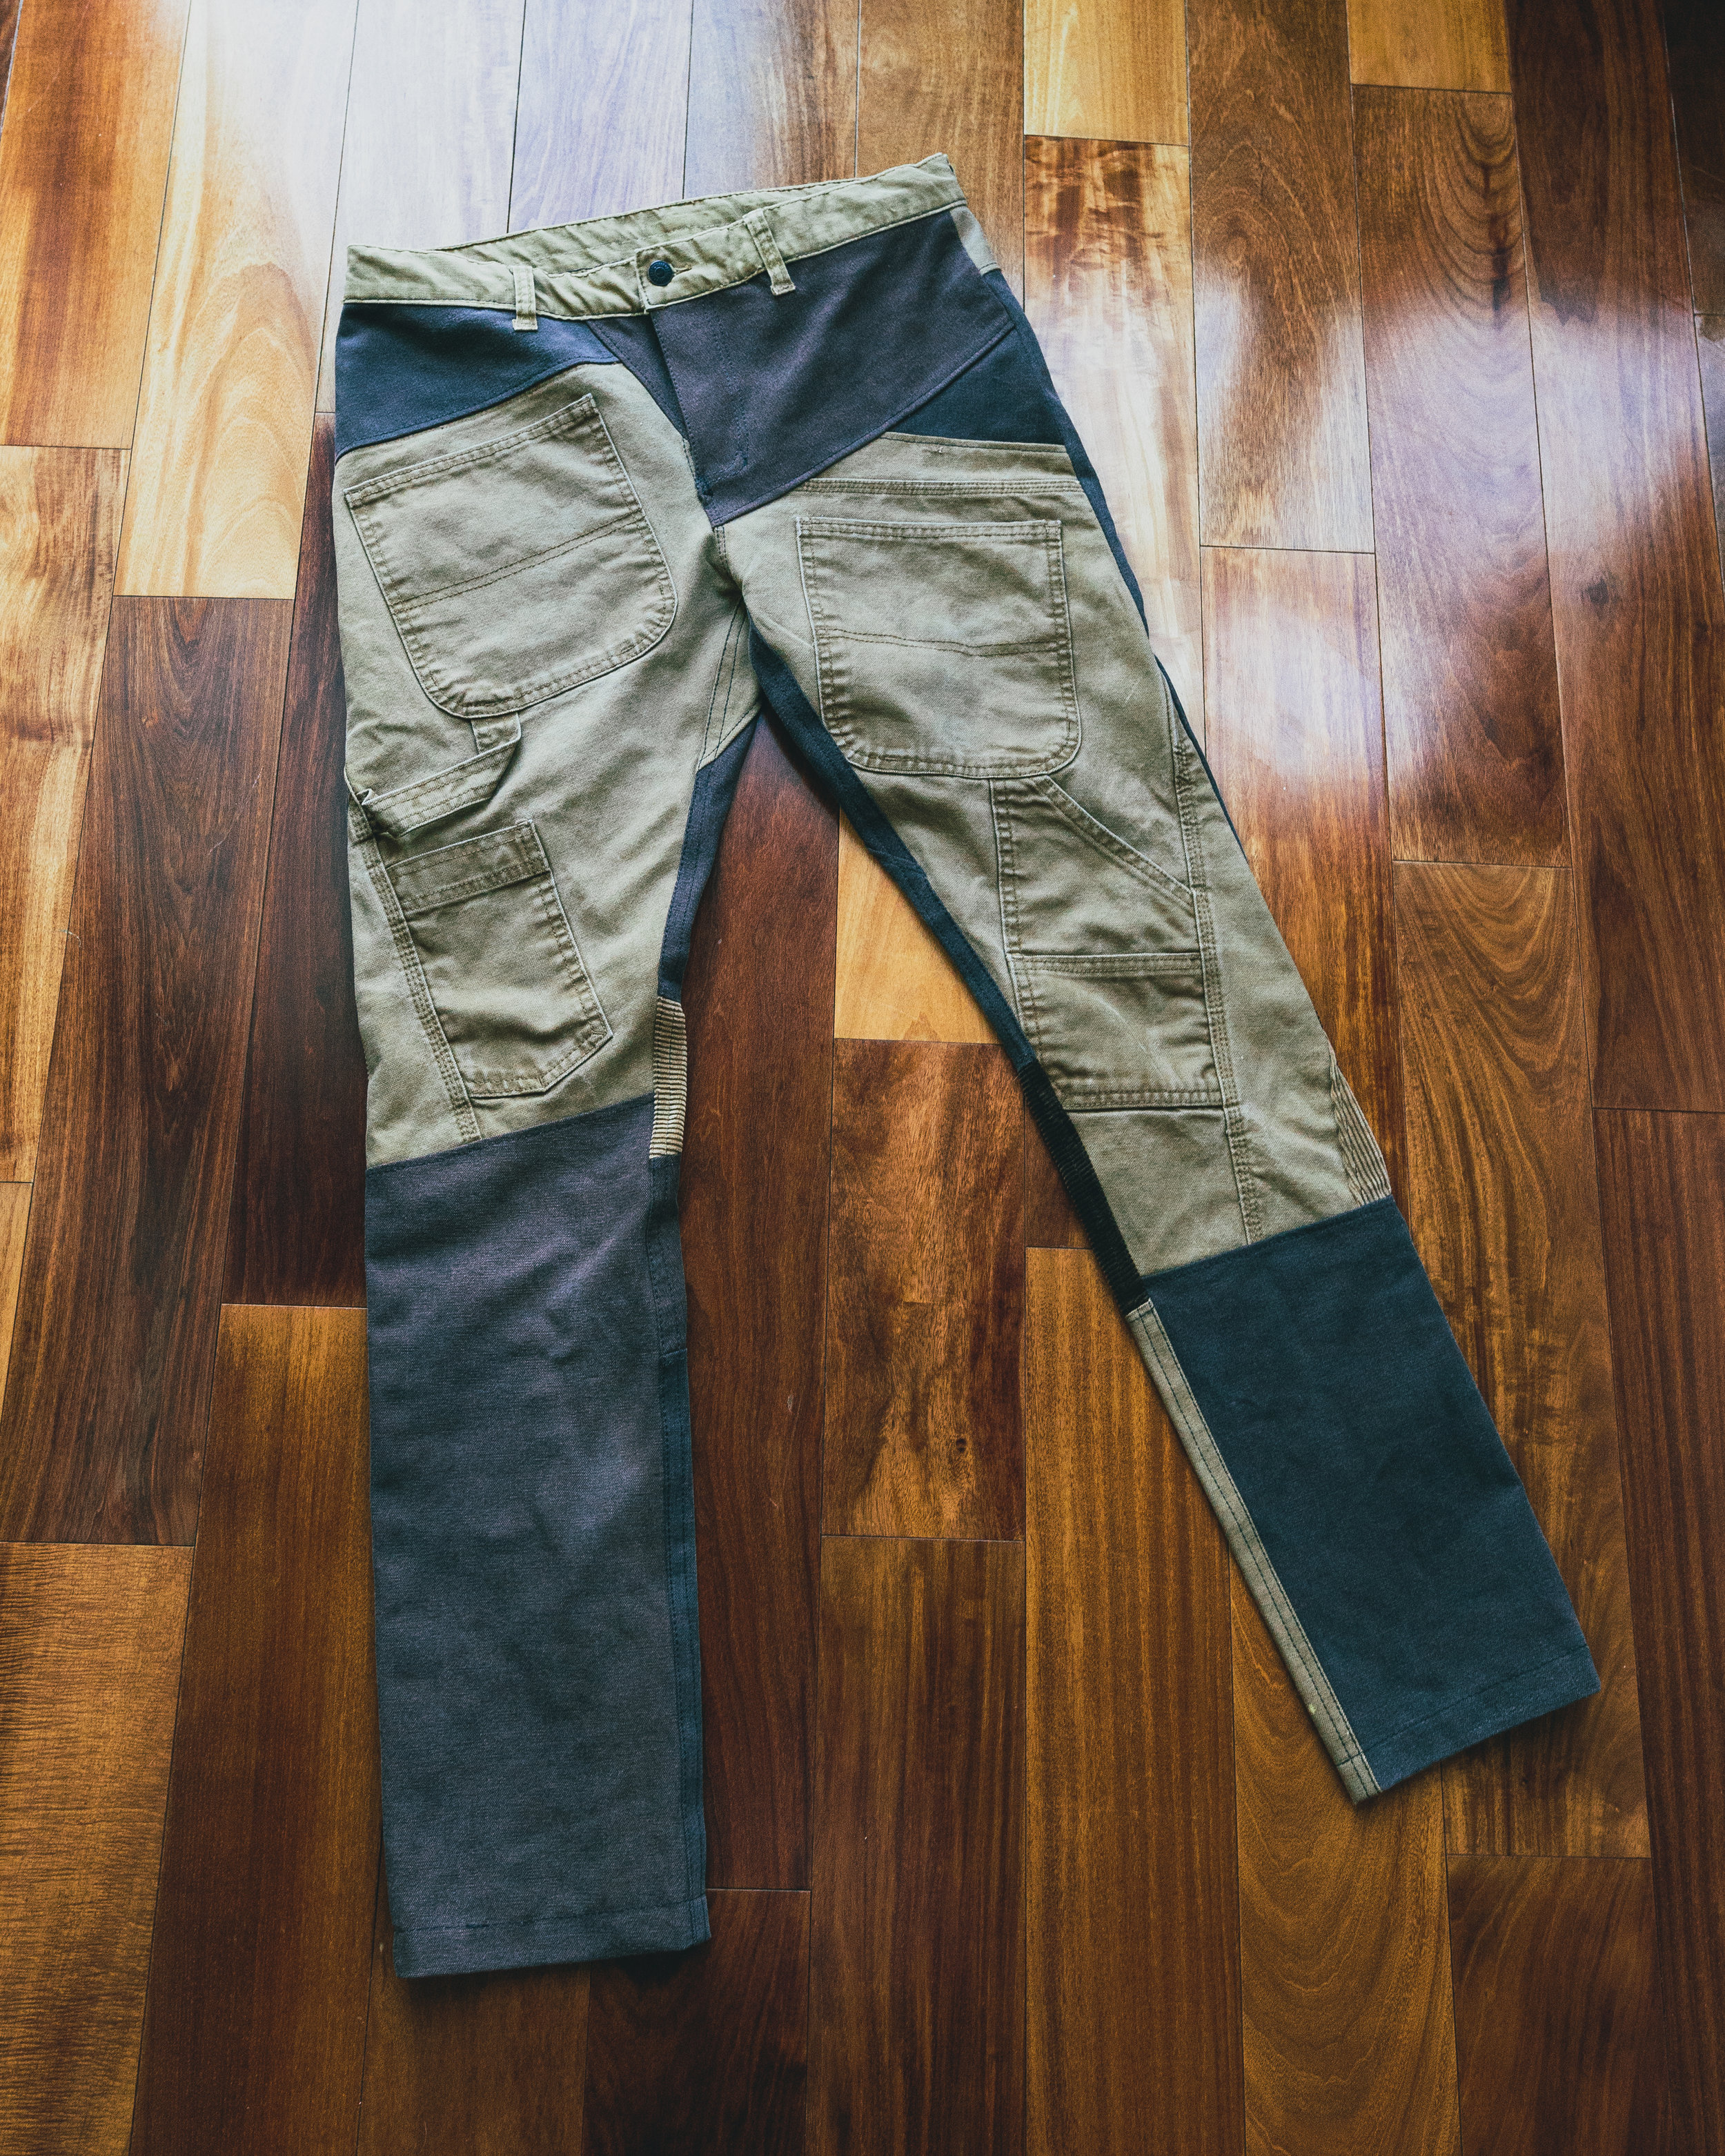 Carpenter Reconstructed - Made from Carhartt & several other pairs of work pants to make a new modern pair of jeans with many functional aspects.